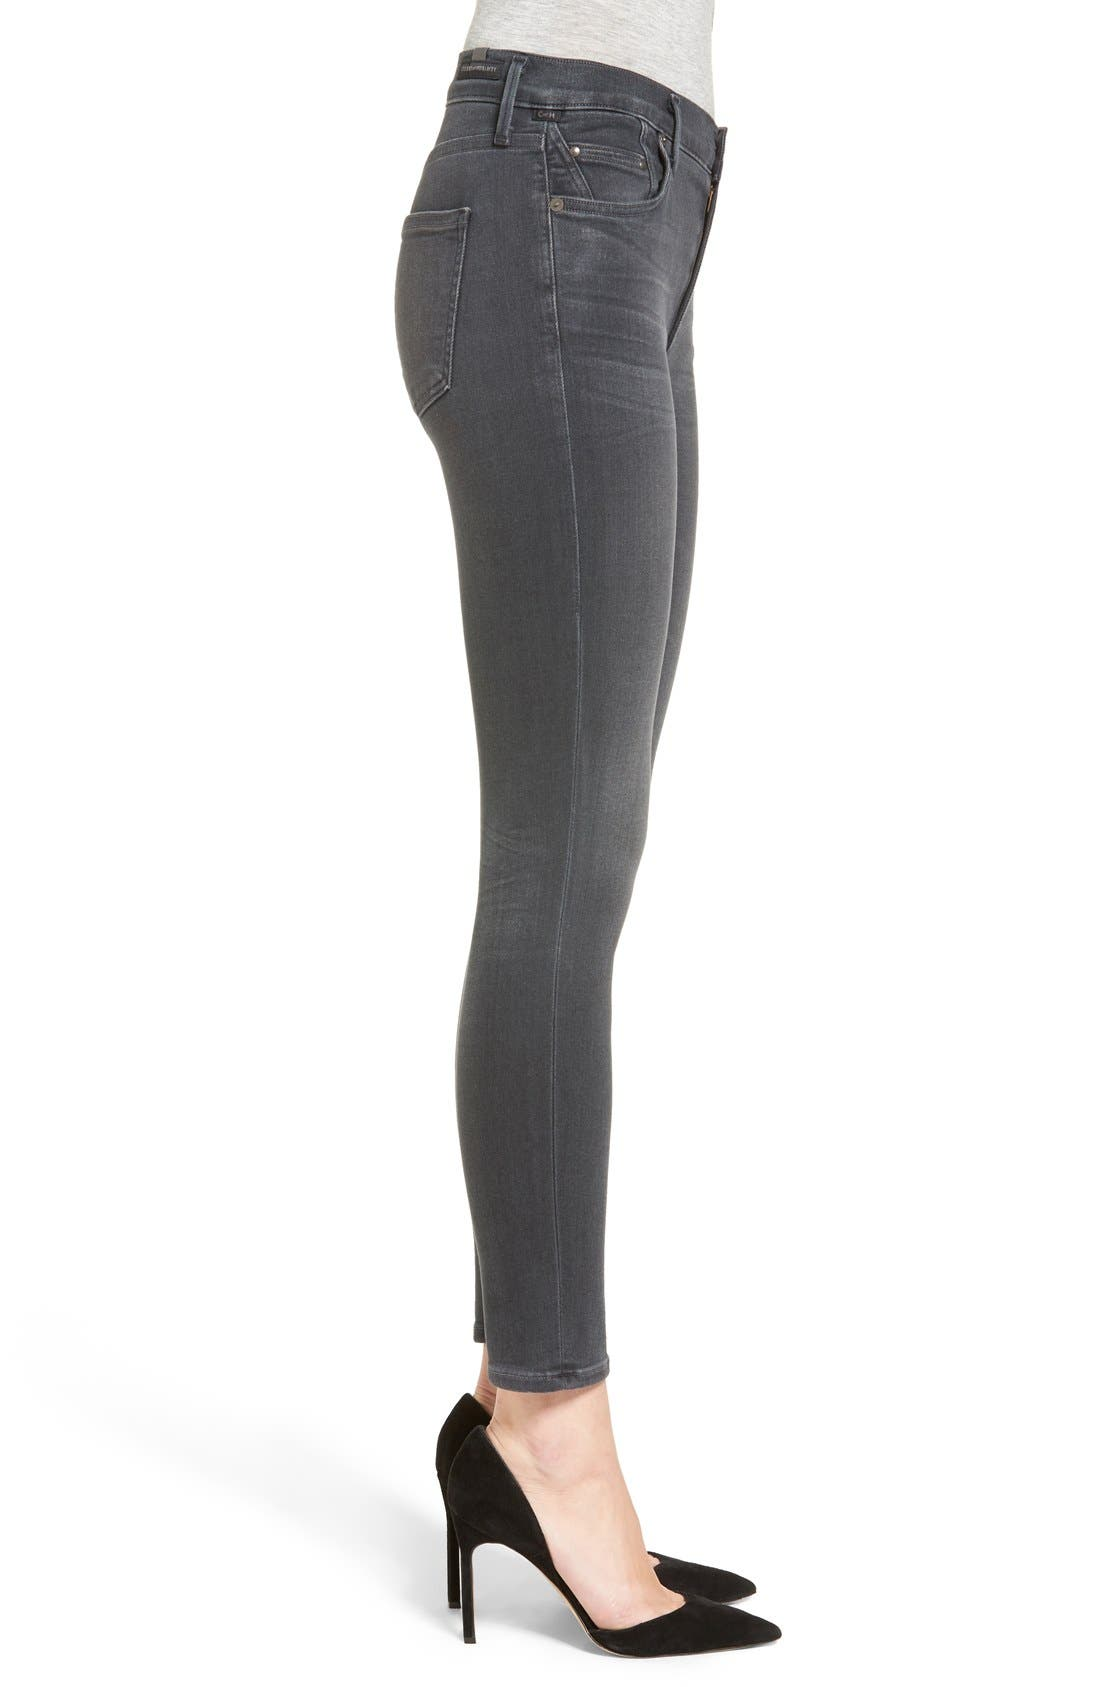 Rocket High Waist Crop Skinny Jeans,                             Alternate thumbnail 3, color,                             002